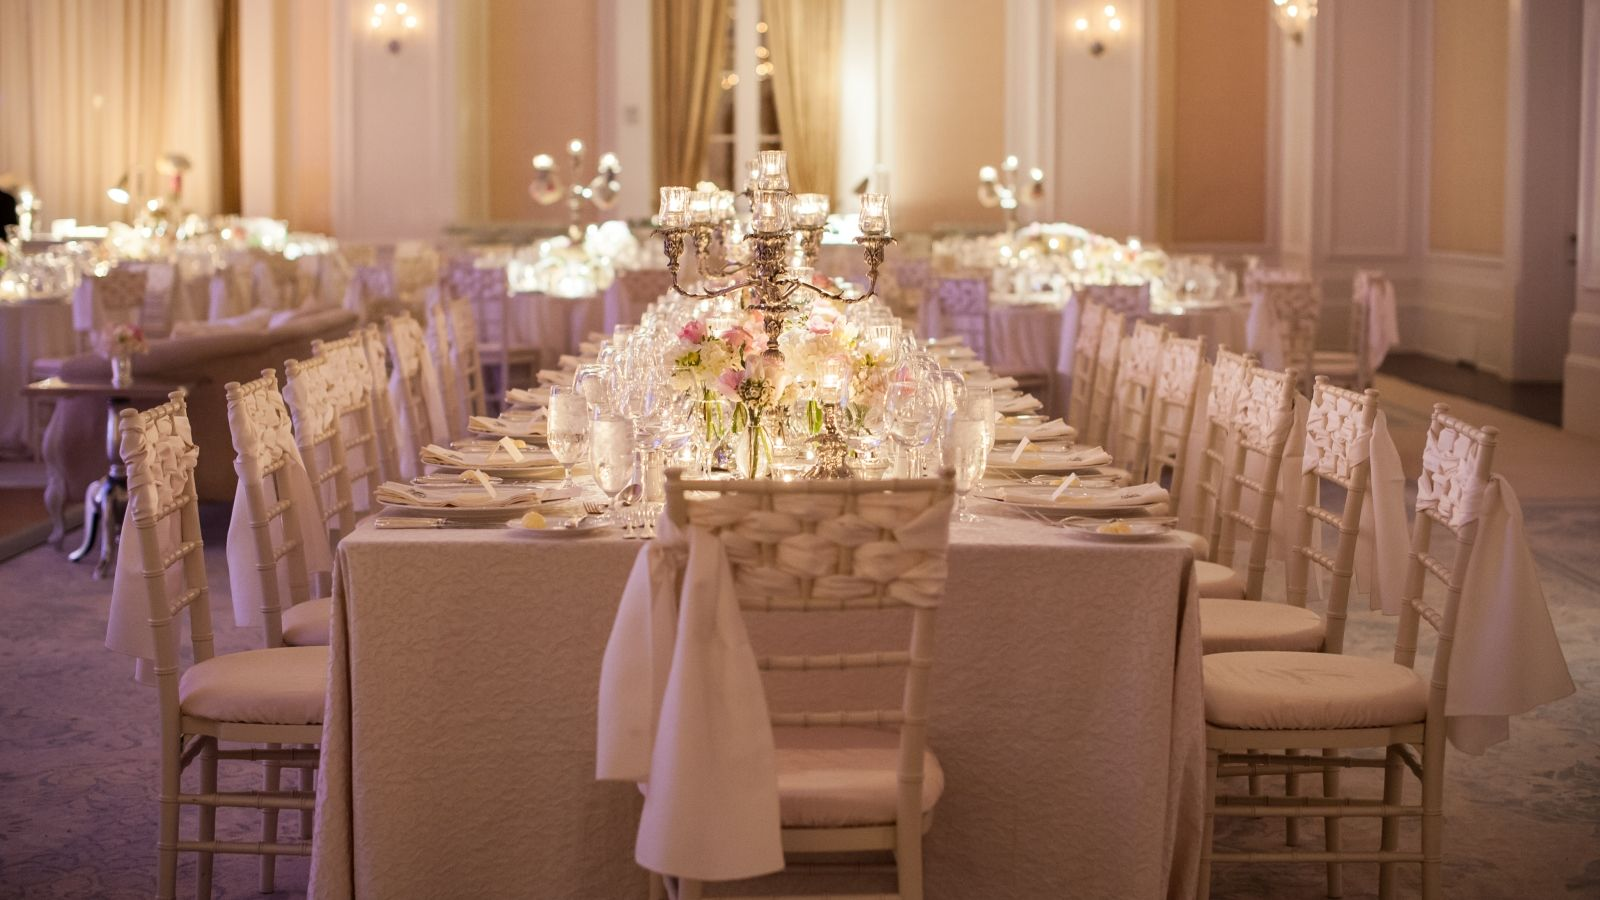 Buchead Wedding Venues - The St. Regis Atlanta